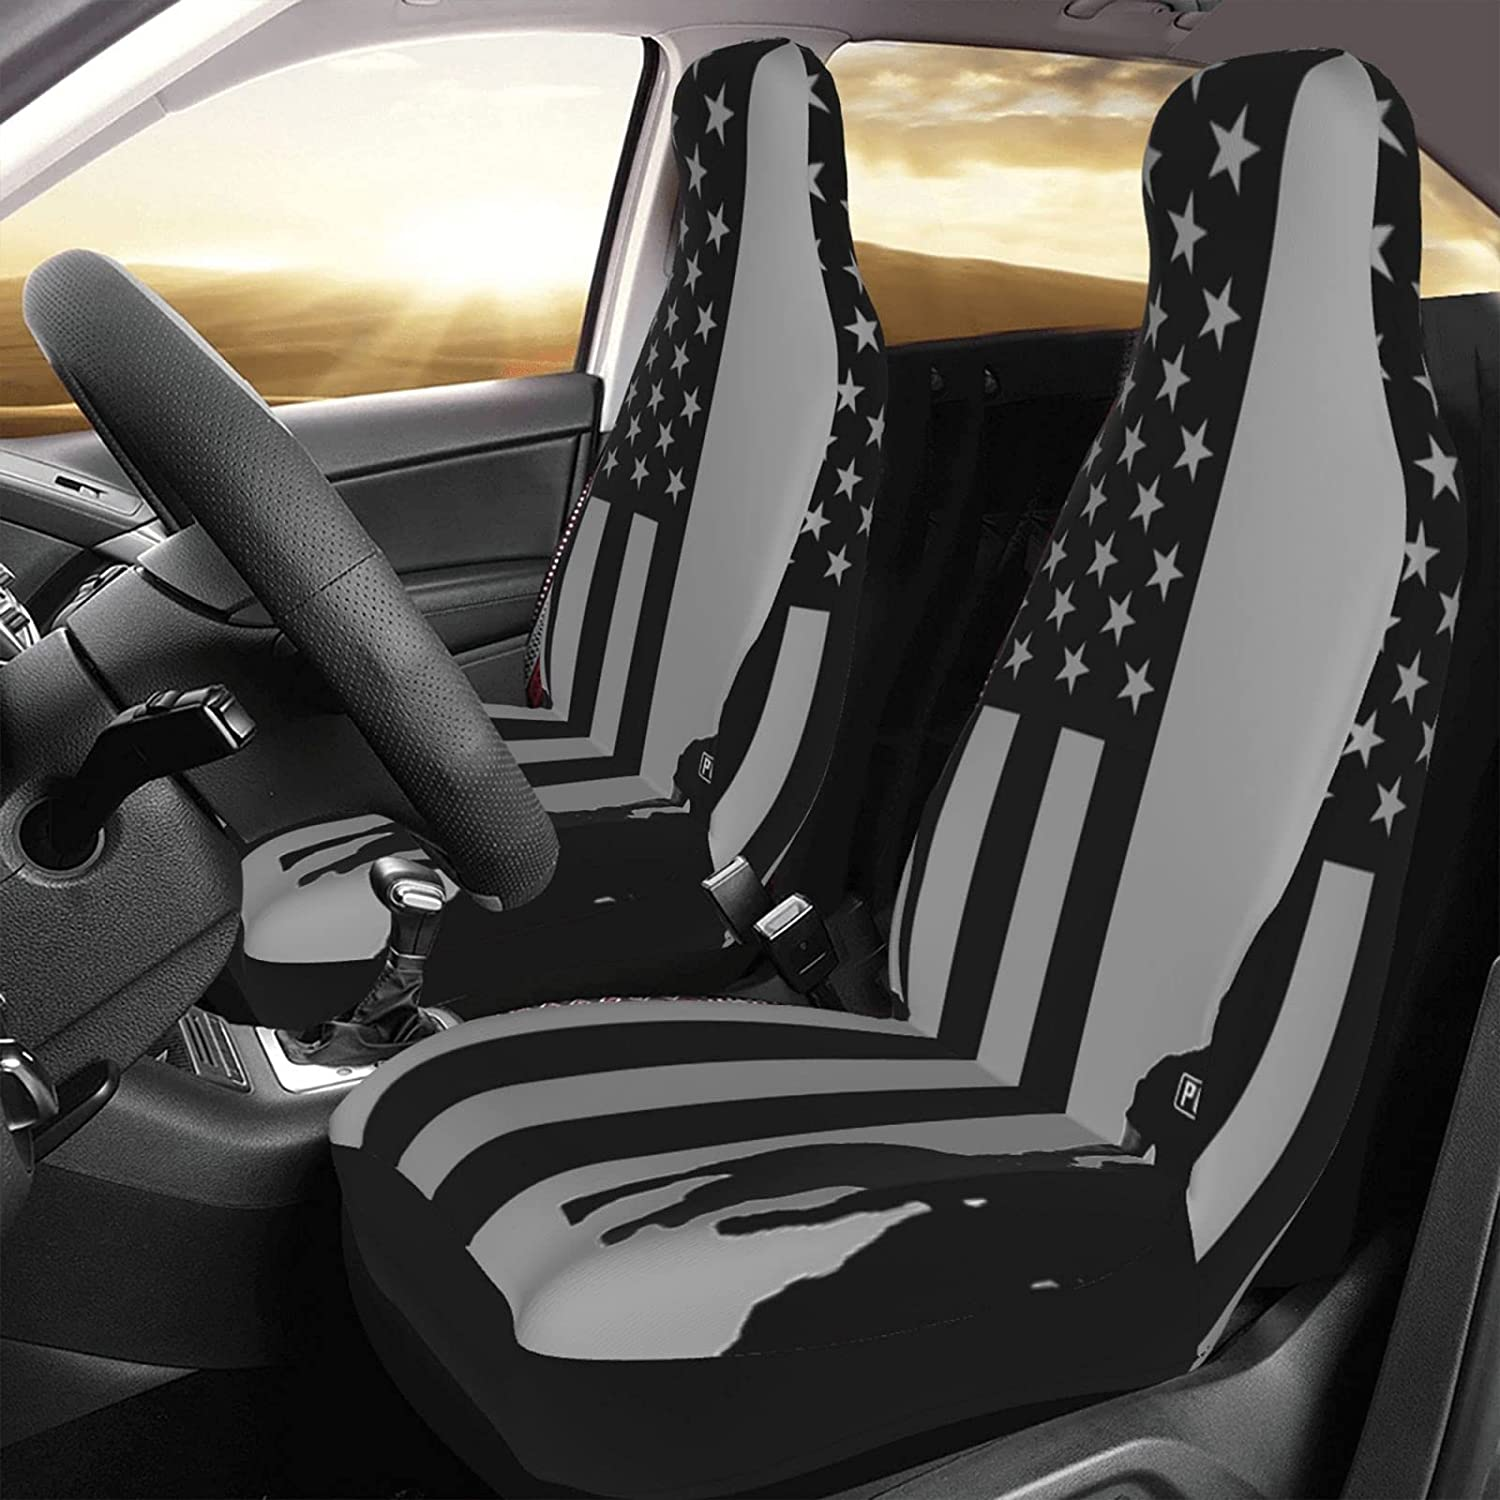 Universal Car Seat Covers Limited time for free shipping Police Dog American Line Sea 4 years warranty Blue Flag